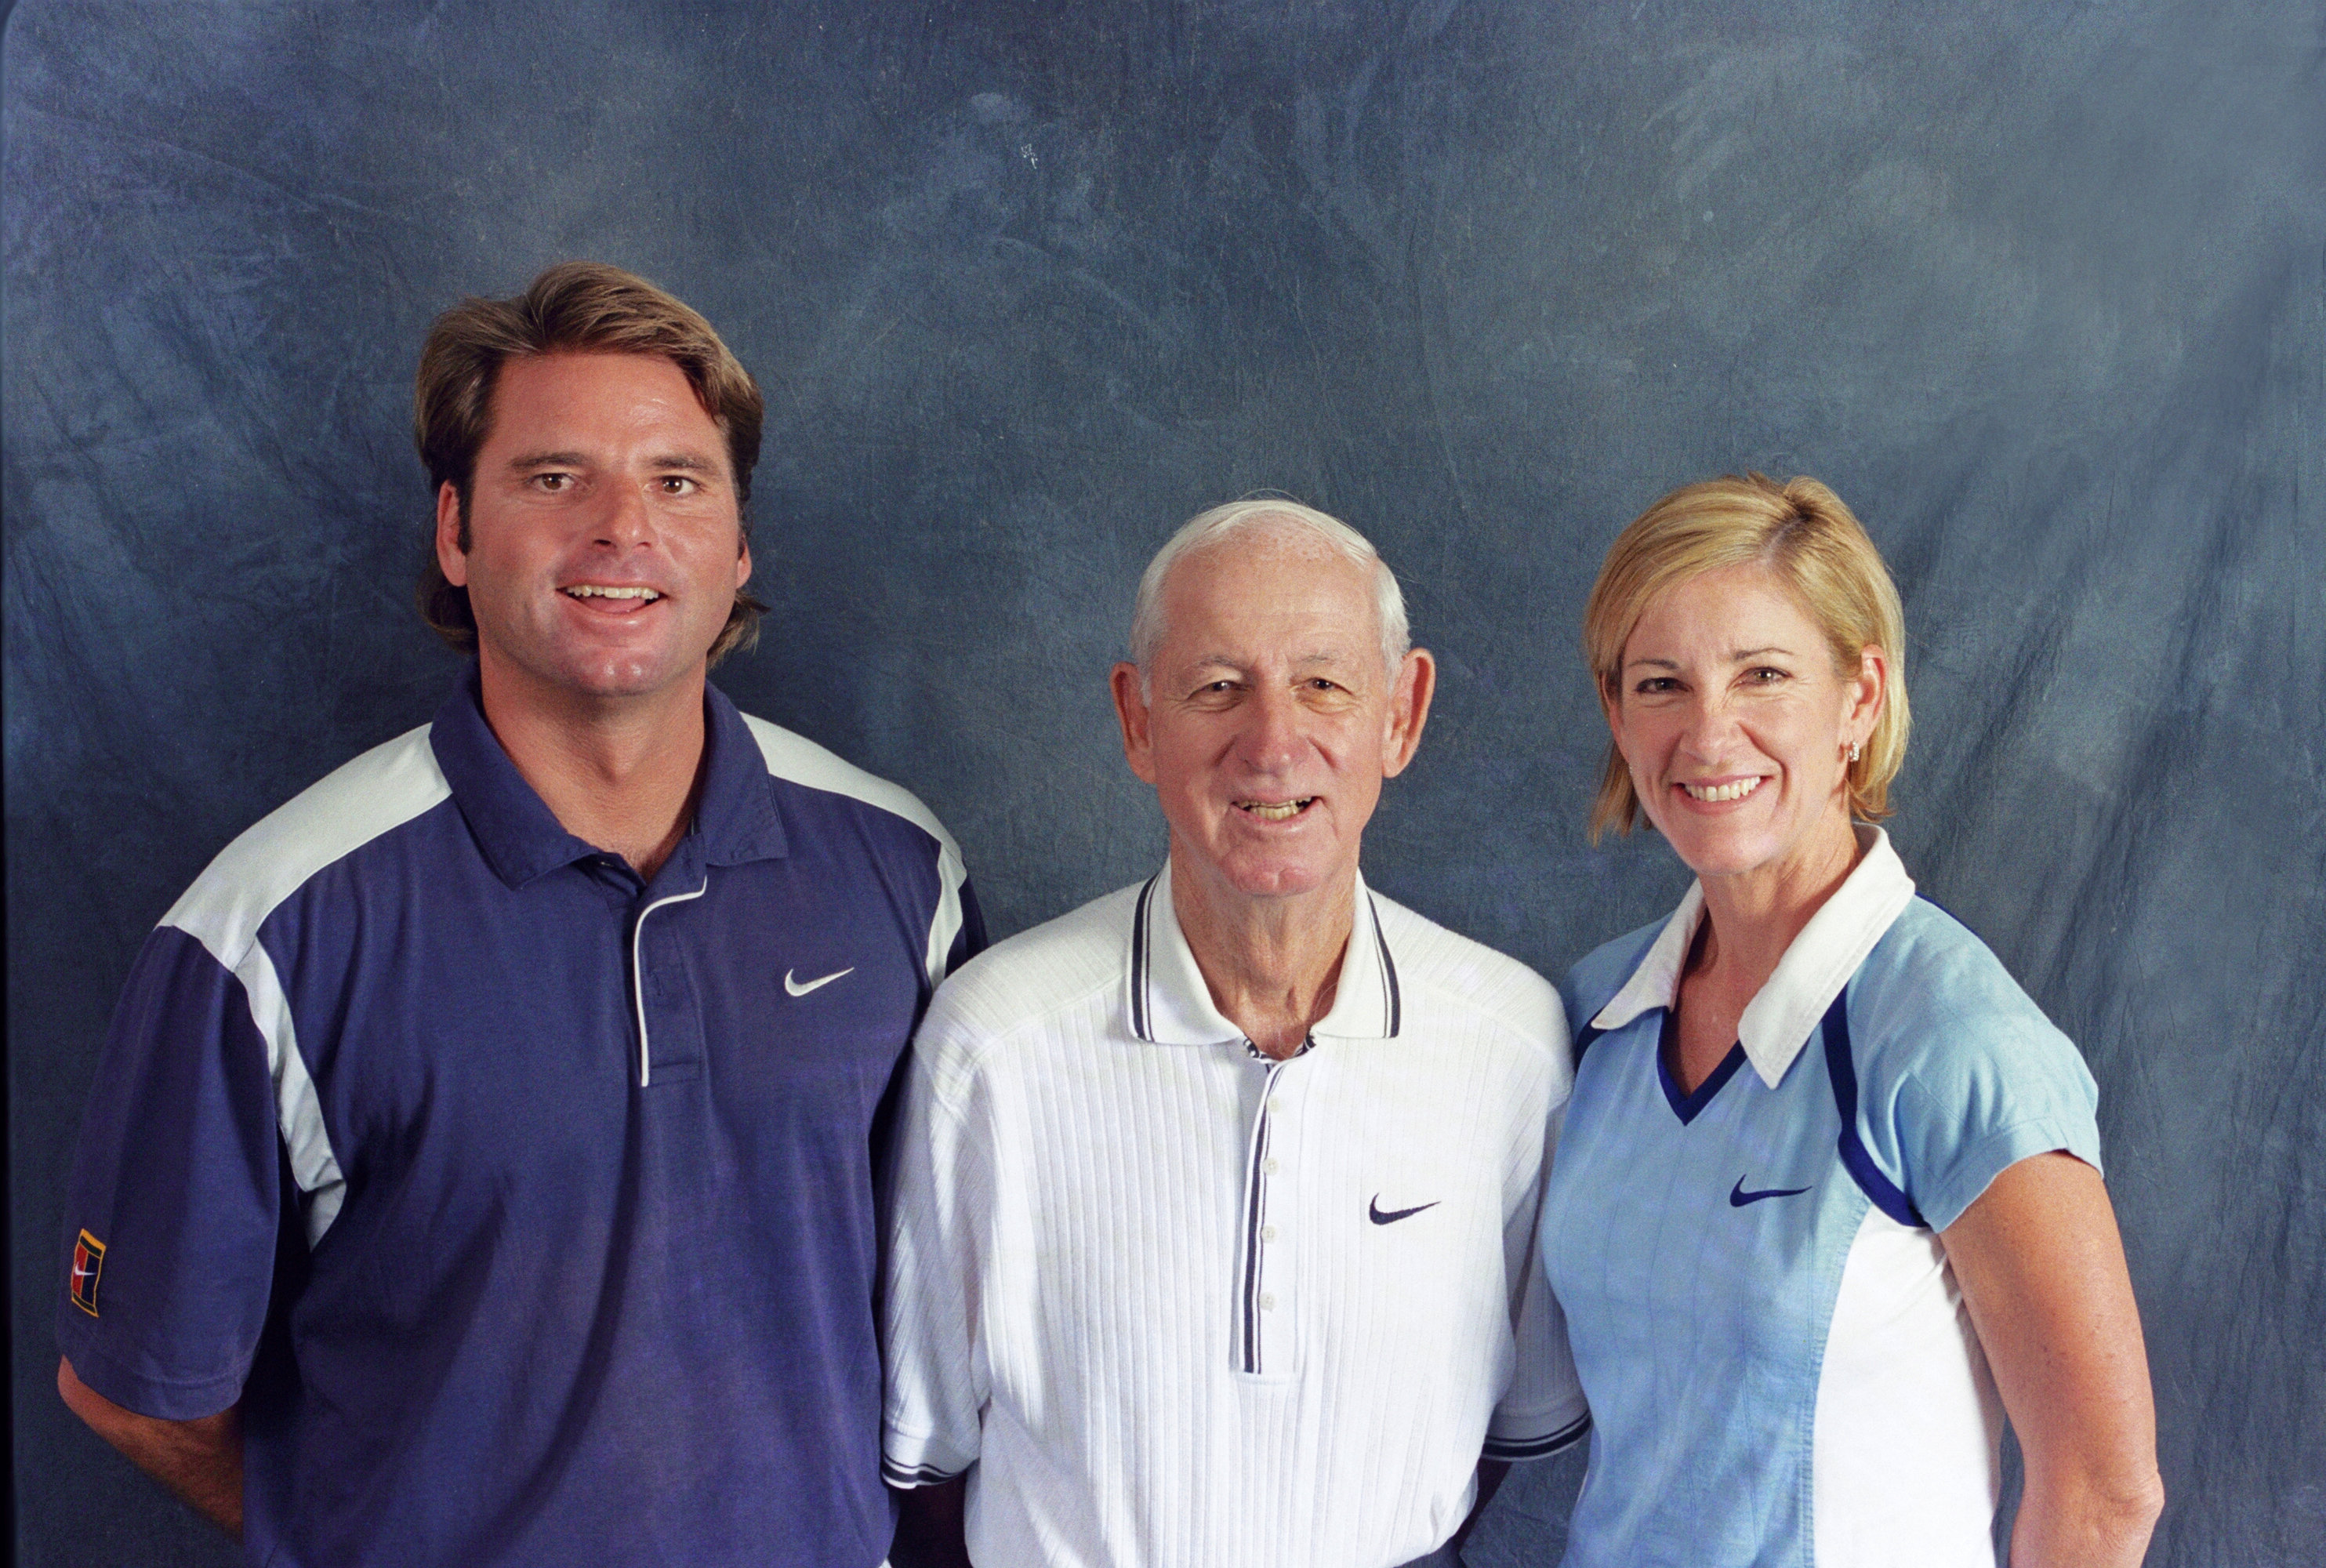 John, Jimmy and Chrissie Evert